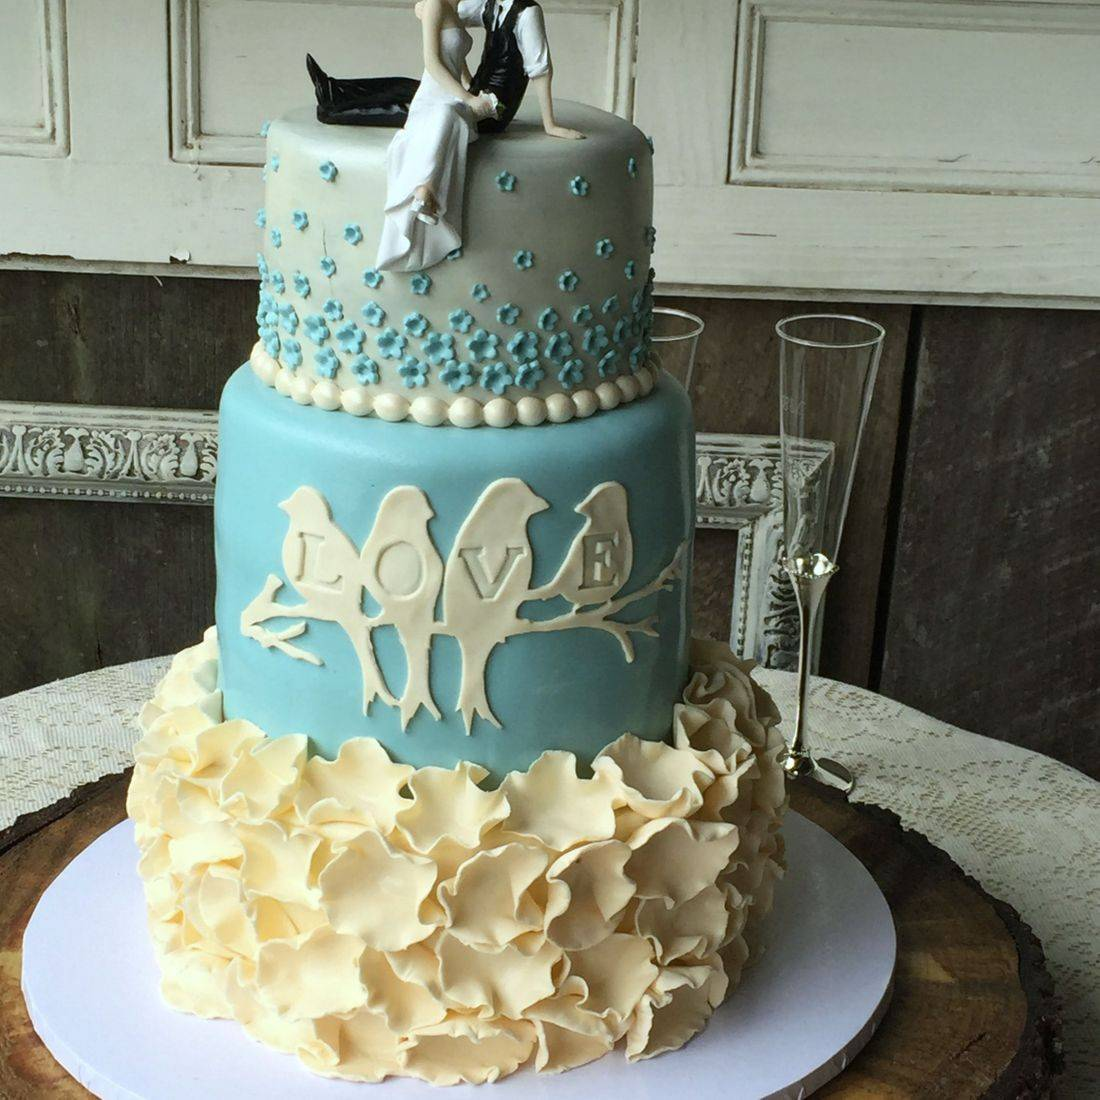 Wedding cake blue and white cream  elegant classic modern wedding cake